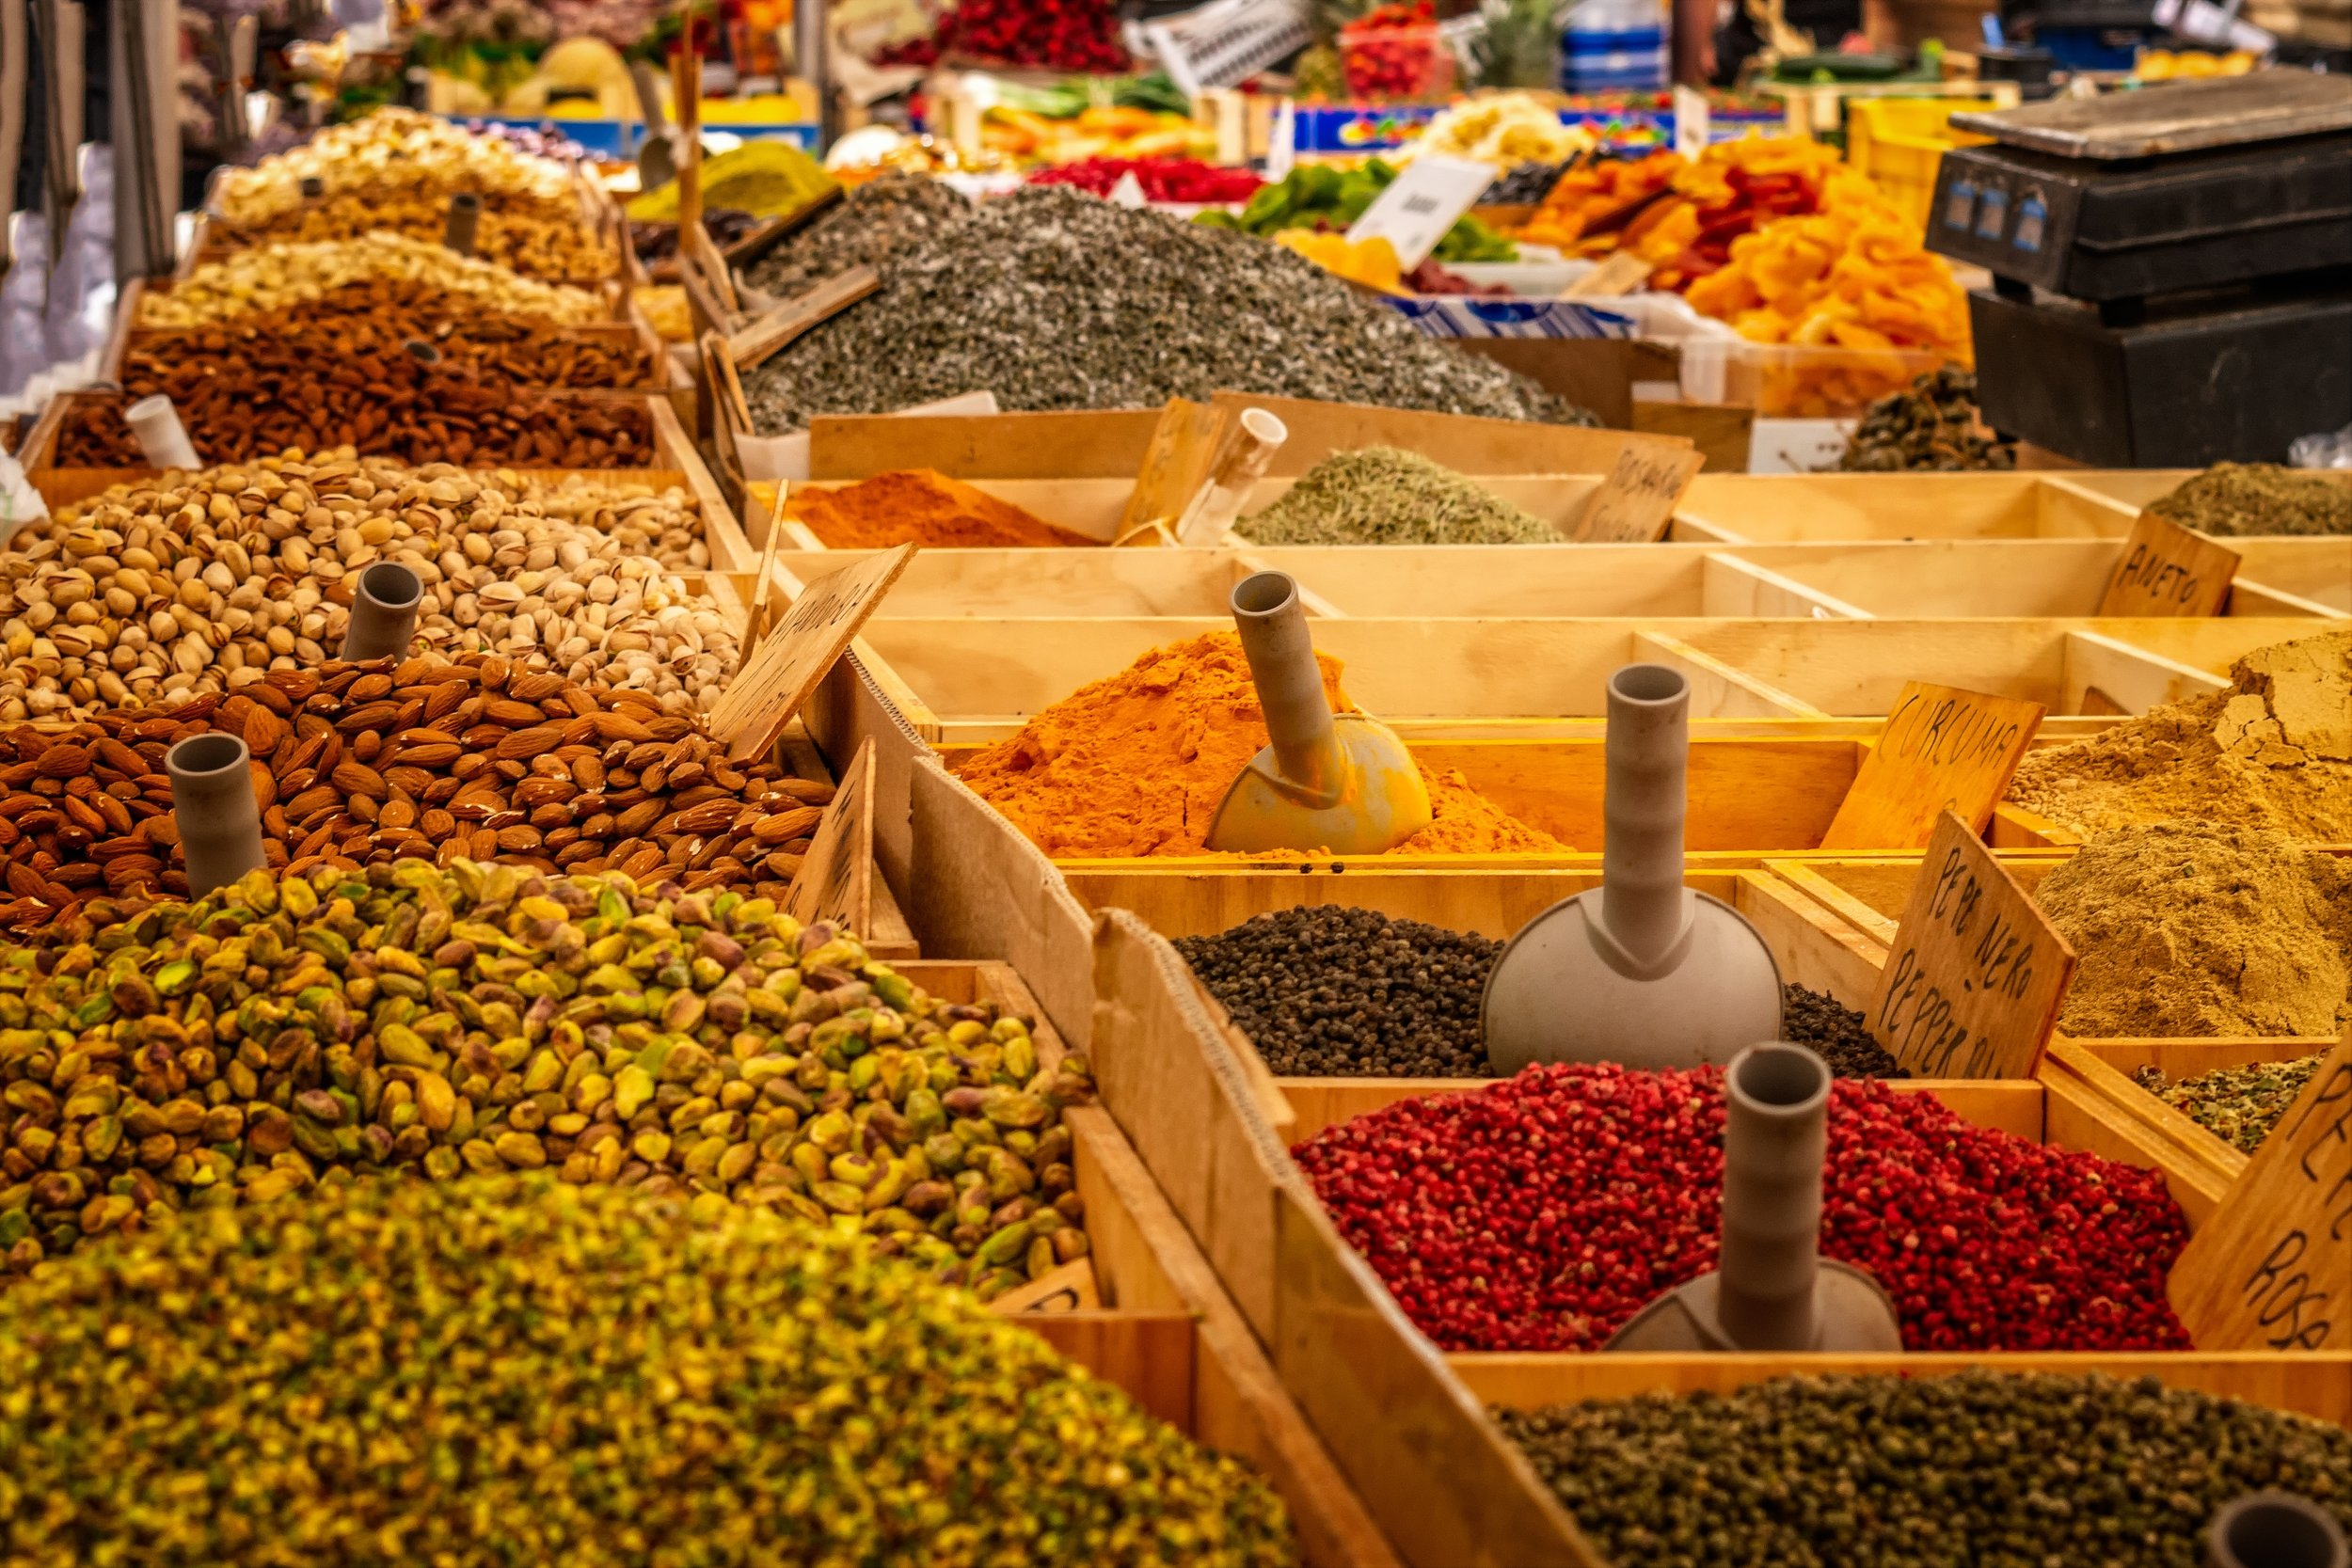 Bulk and zero waste stores have grains, spices, herbs and more! Photo: Pixabay